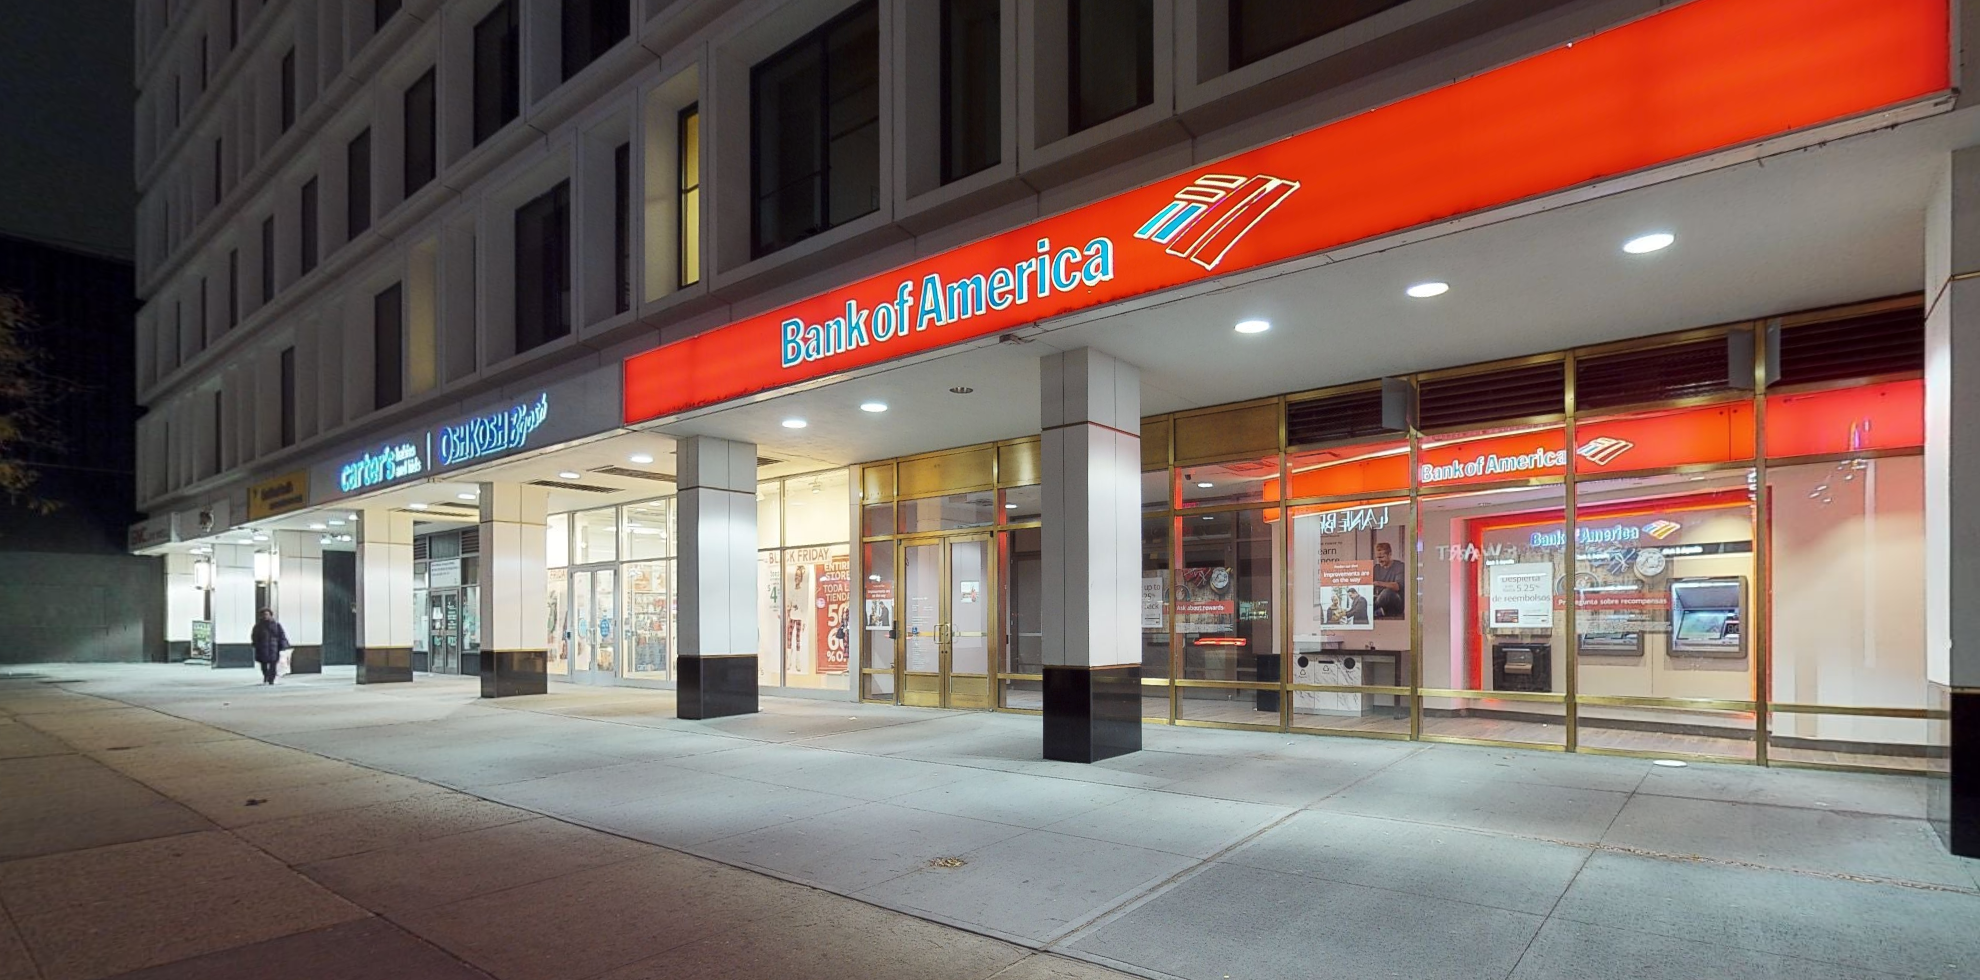 Bank of America financial center with walk-up ATM   215 W 125th St, New York, NY 10027